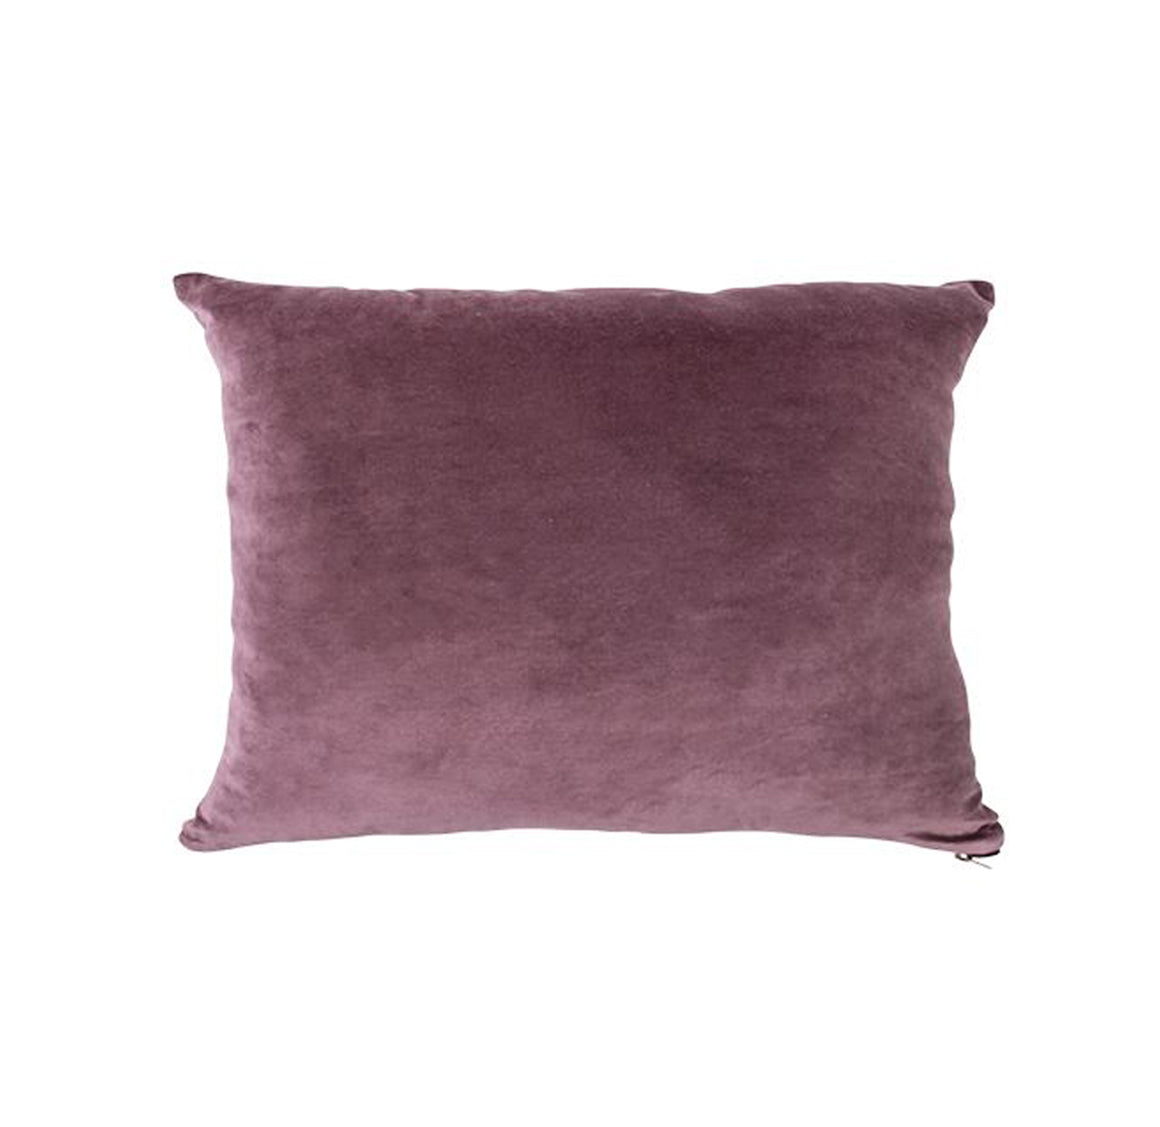 Cushion Velvet Rosewood 40 x 60